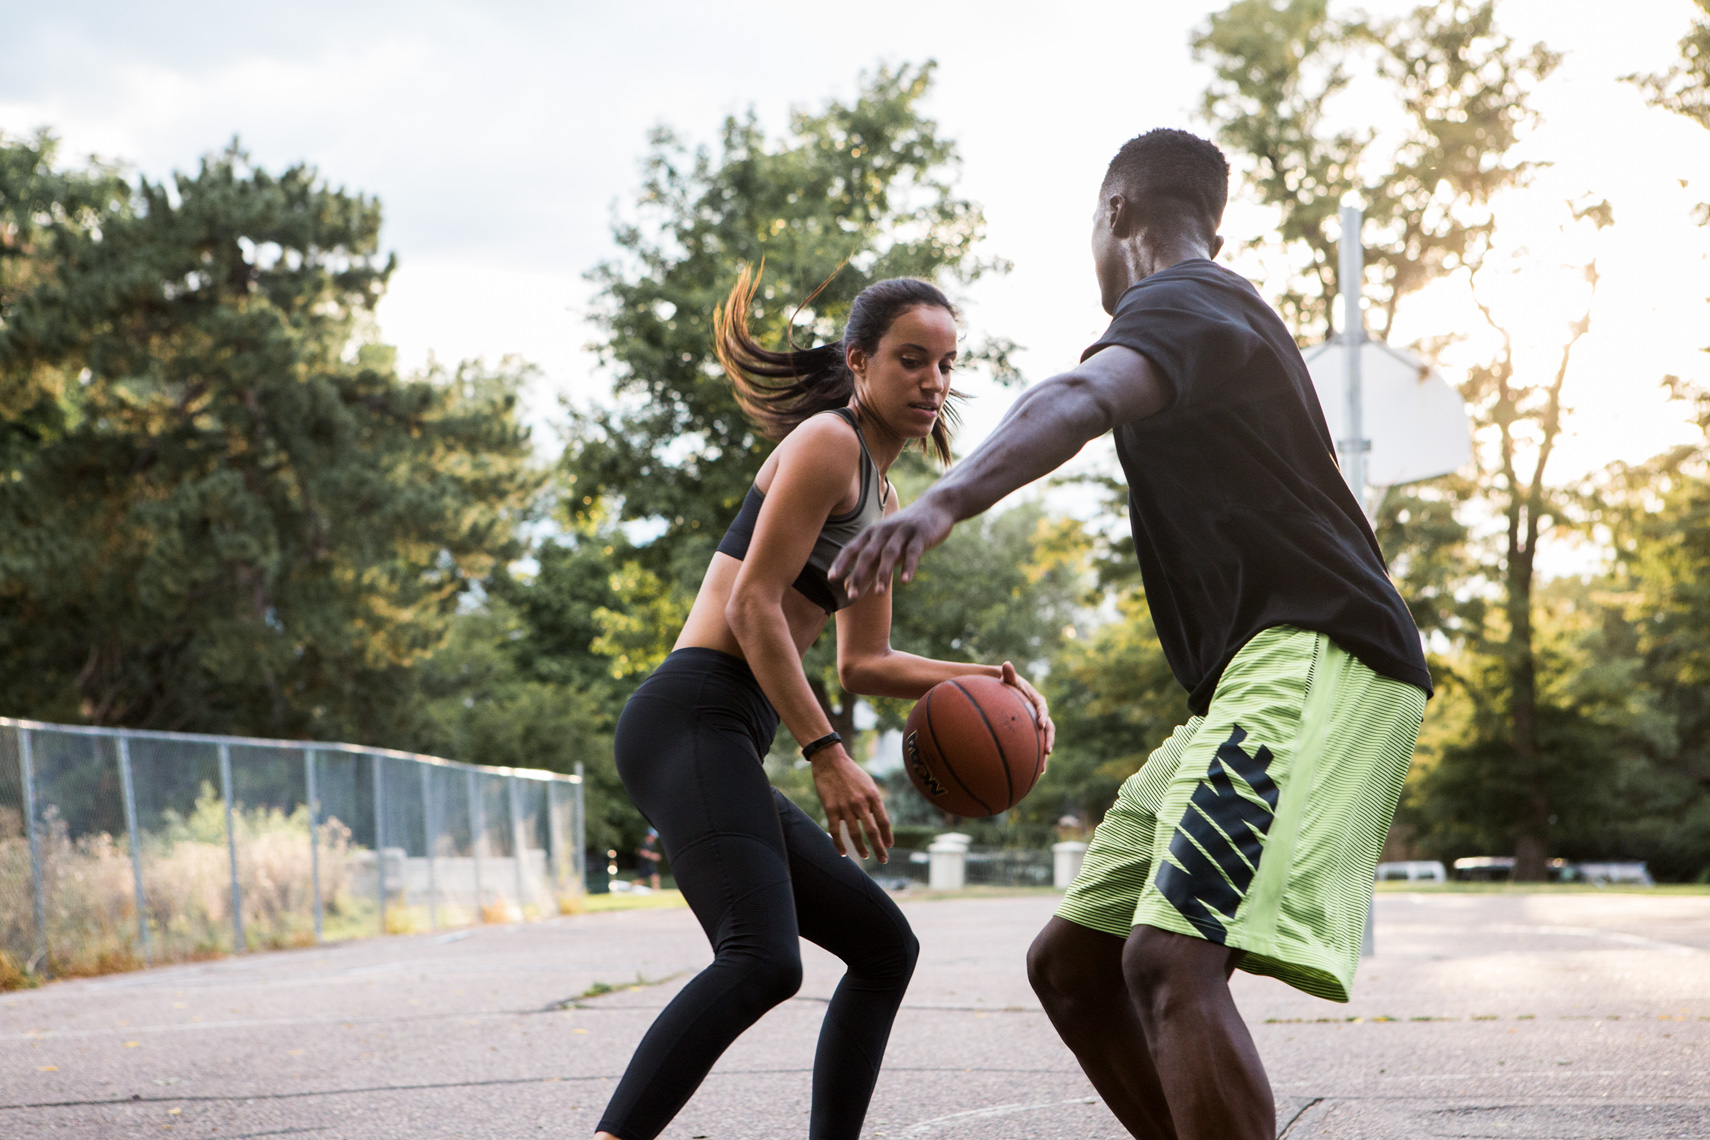 two friends playing basketball with Nike shorts